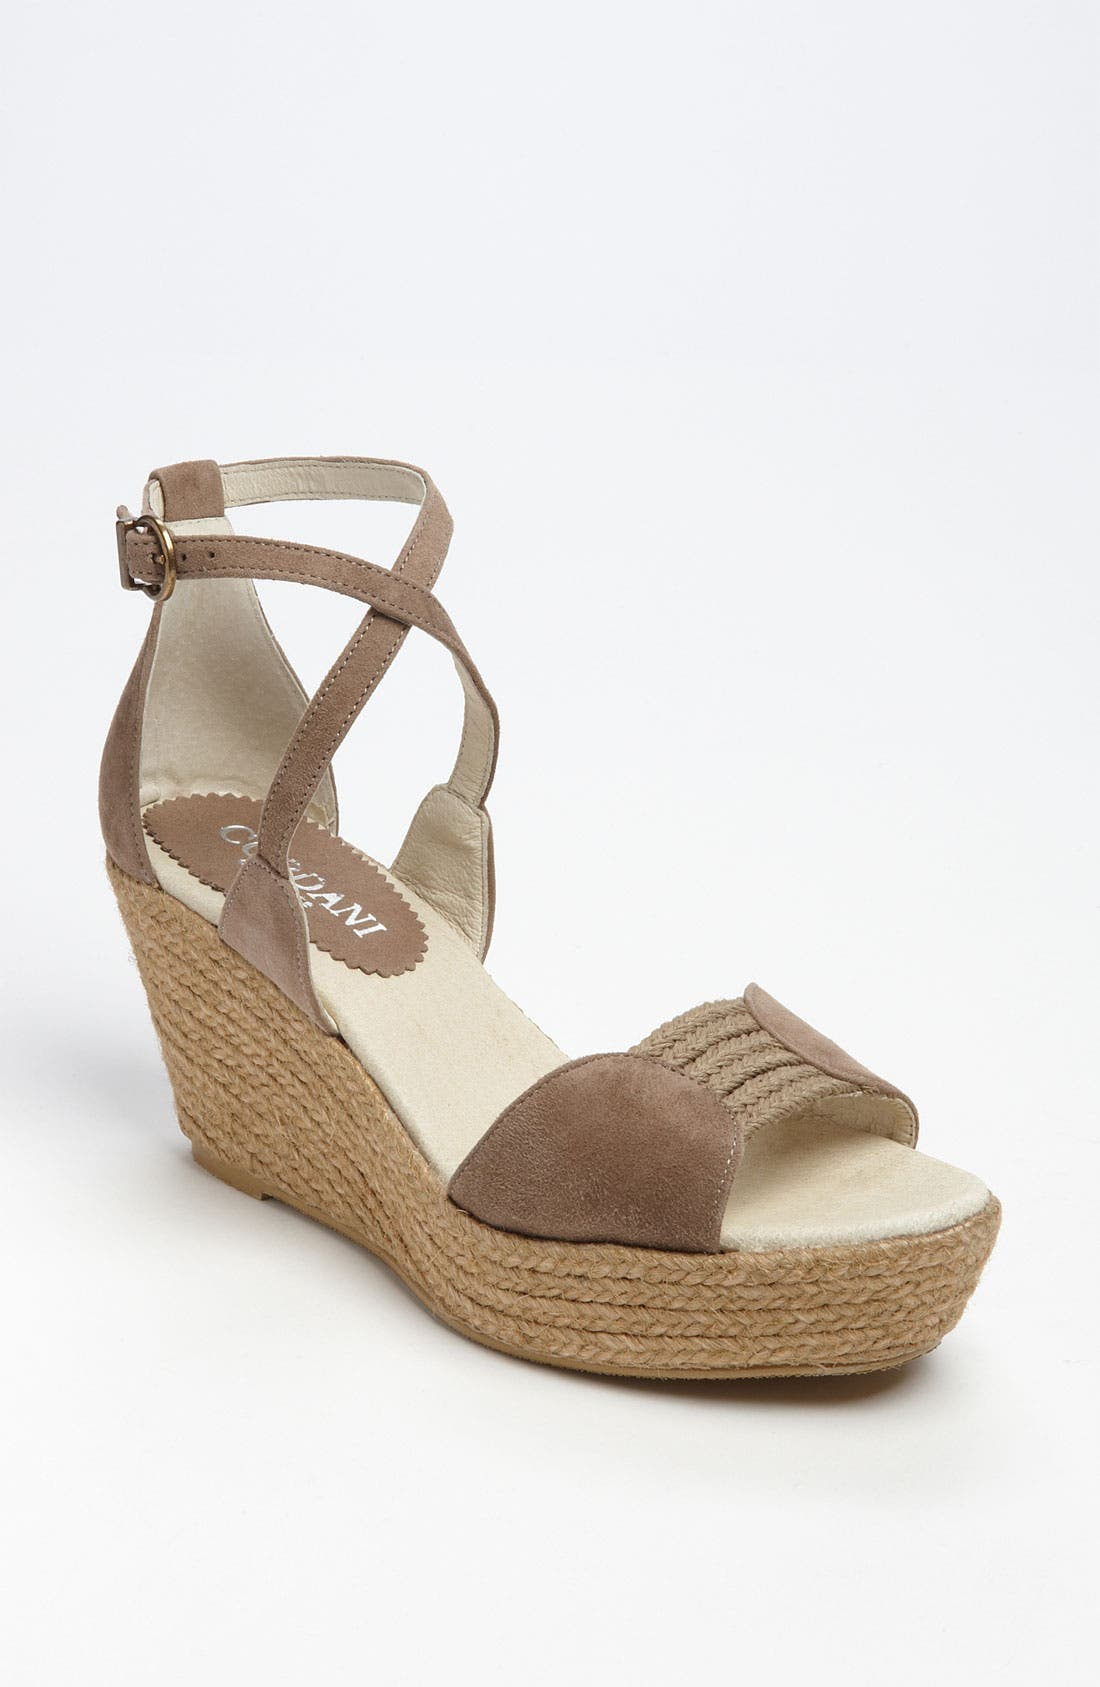 Alternate Image 1 Selected - Cordani 'Effie' Sandal